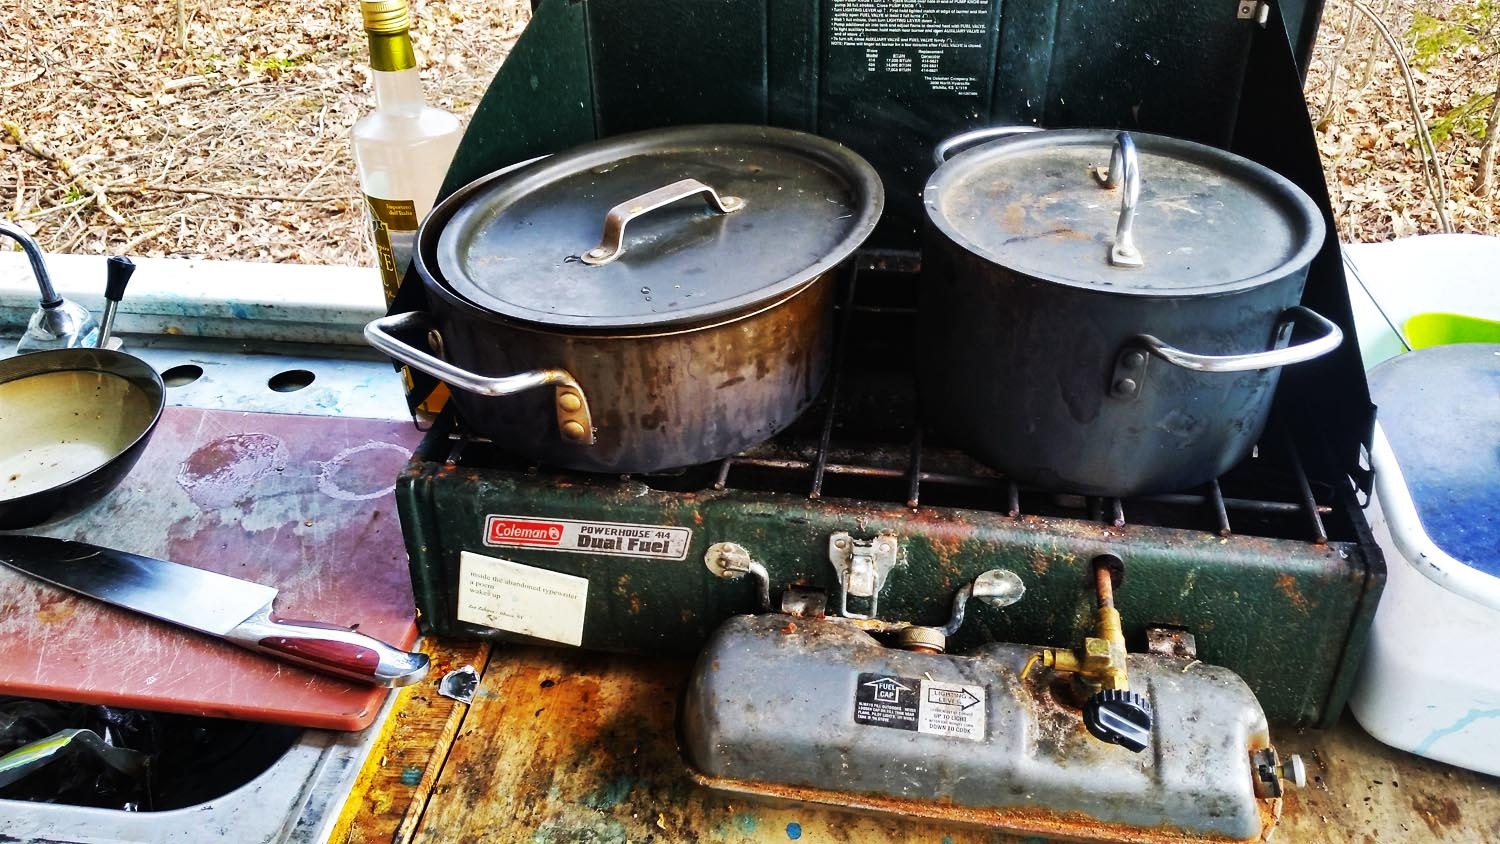 I've taken this stove everywhere. And left it sitting outside in the elements, way too often.